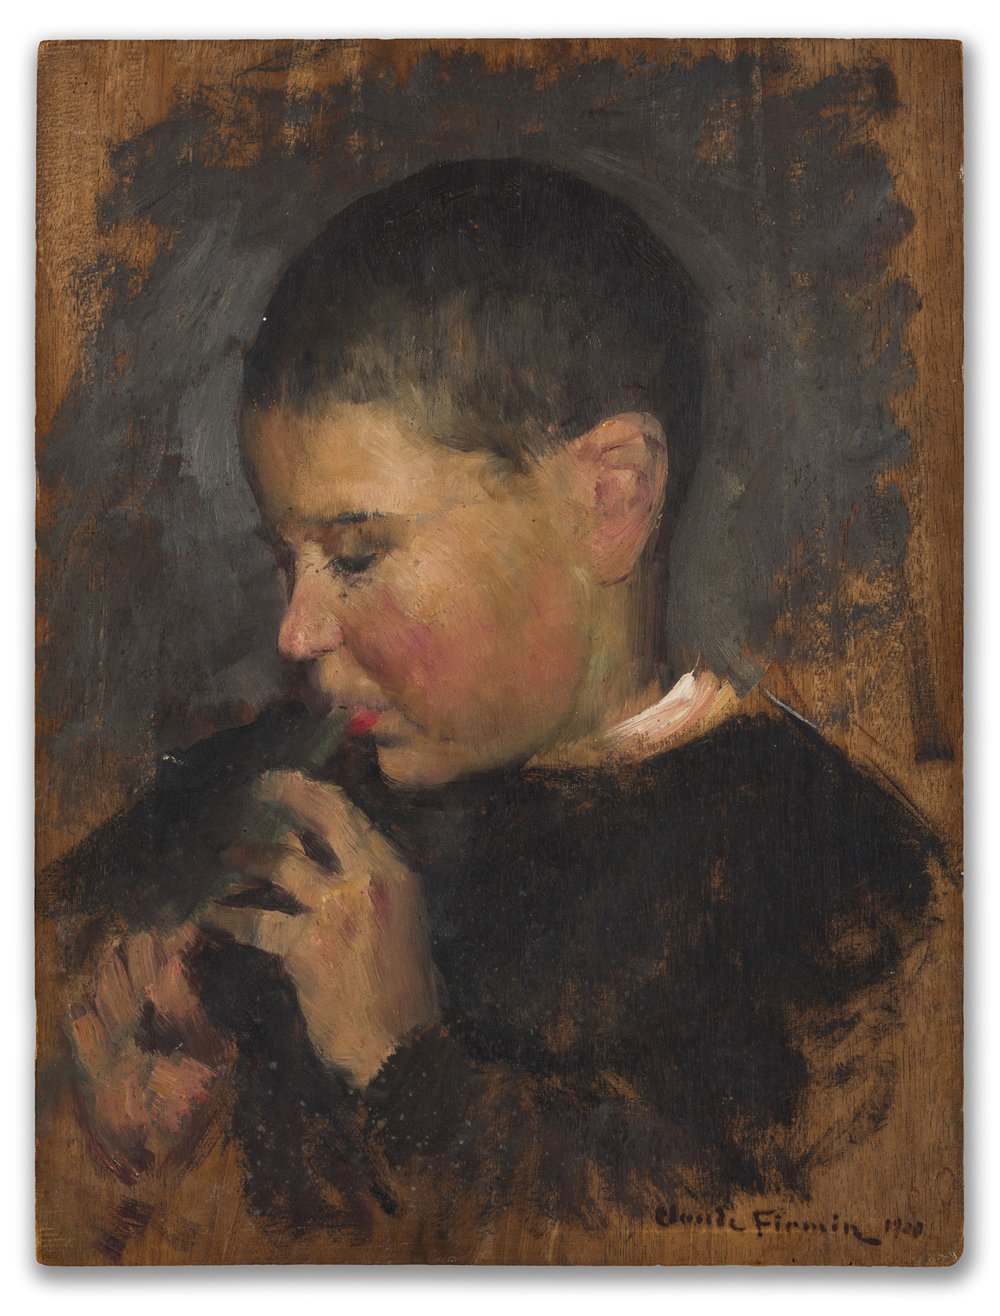 Claude Firmin, (French 1864-1944), Study of Boy with a Pipe, 1920.